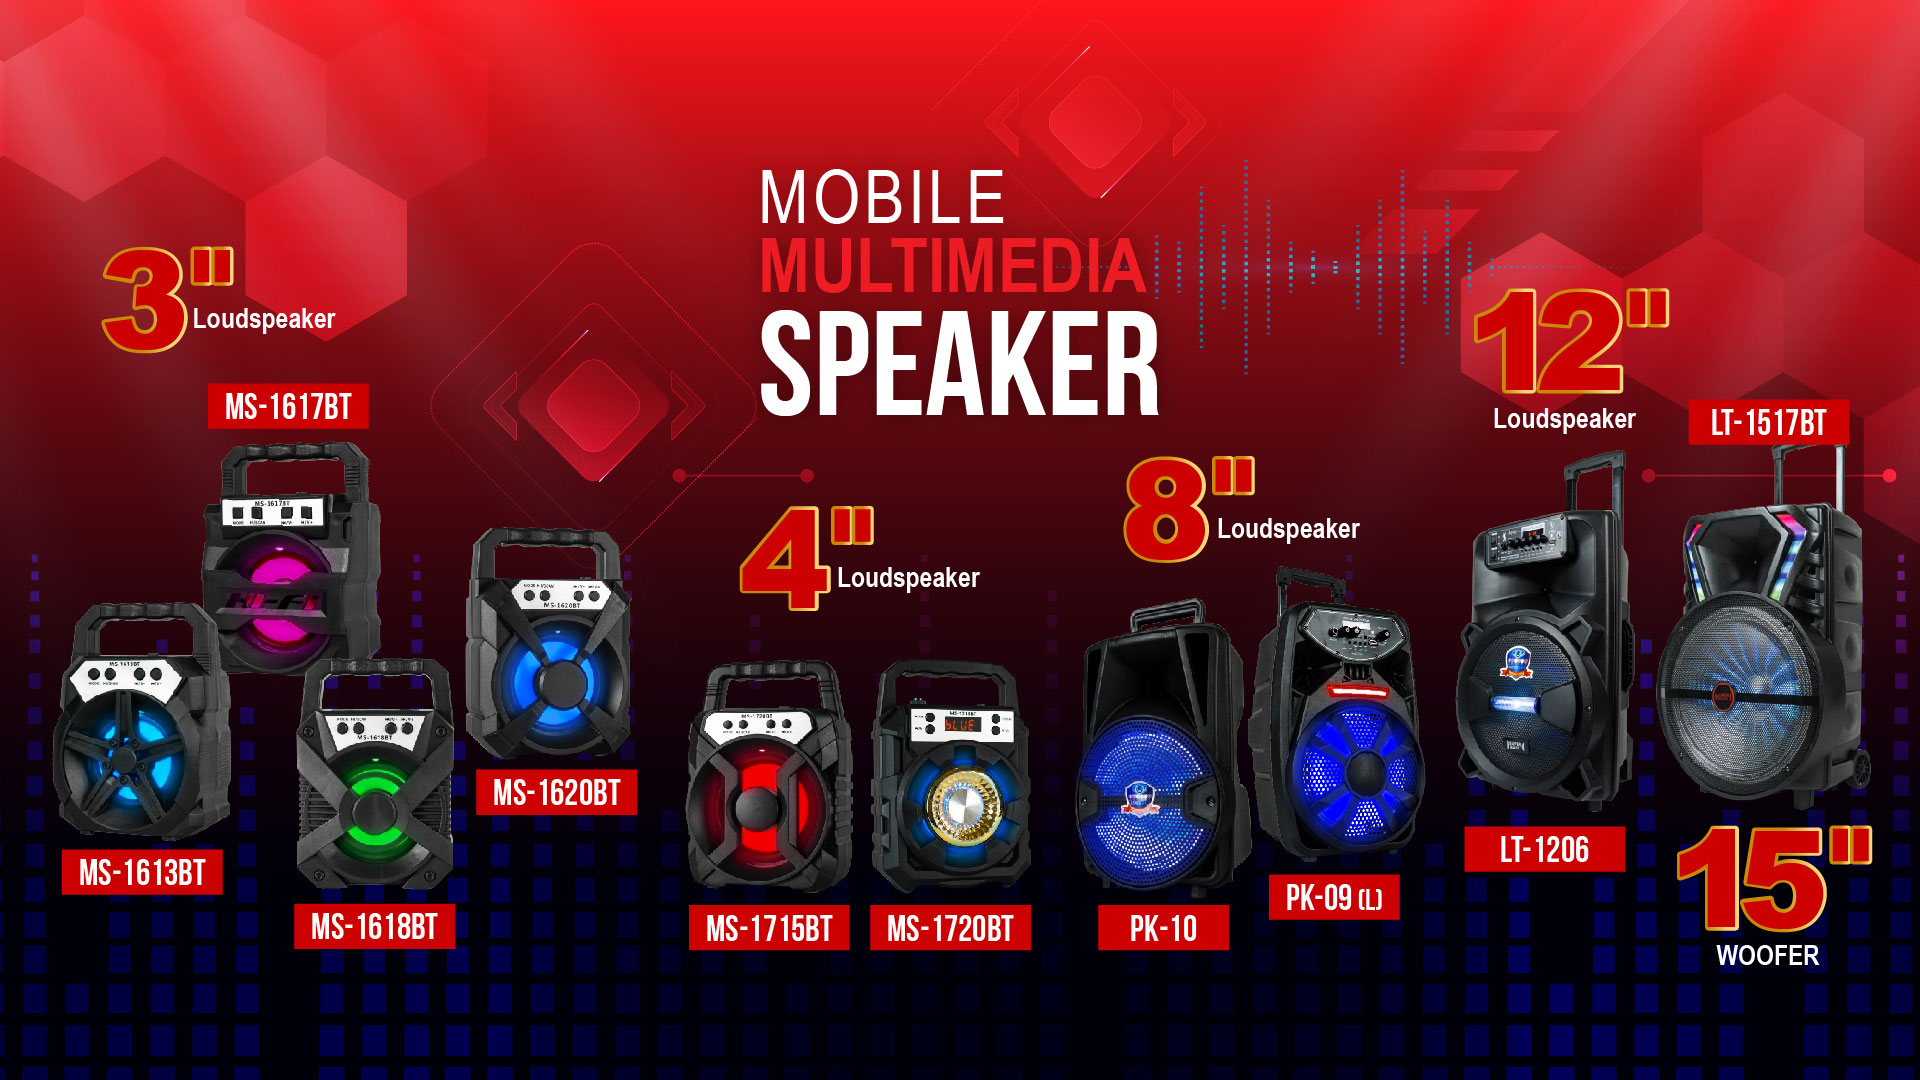 altr-ultimate-ecommerce_gpower_wdd_home_graphic_main-slider_20200827-product-intro-mobile-multimedia-speaker-series.jpg